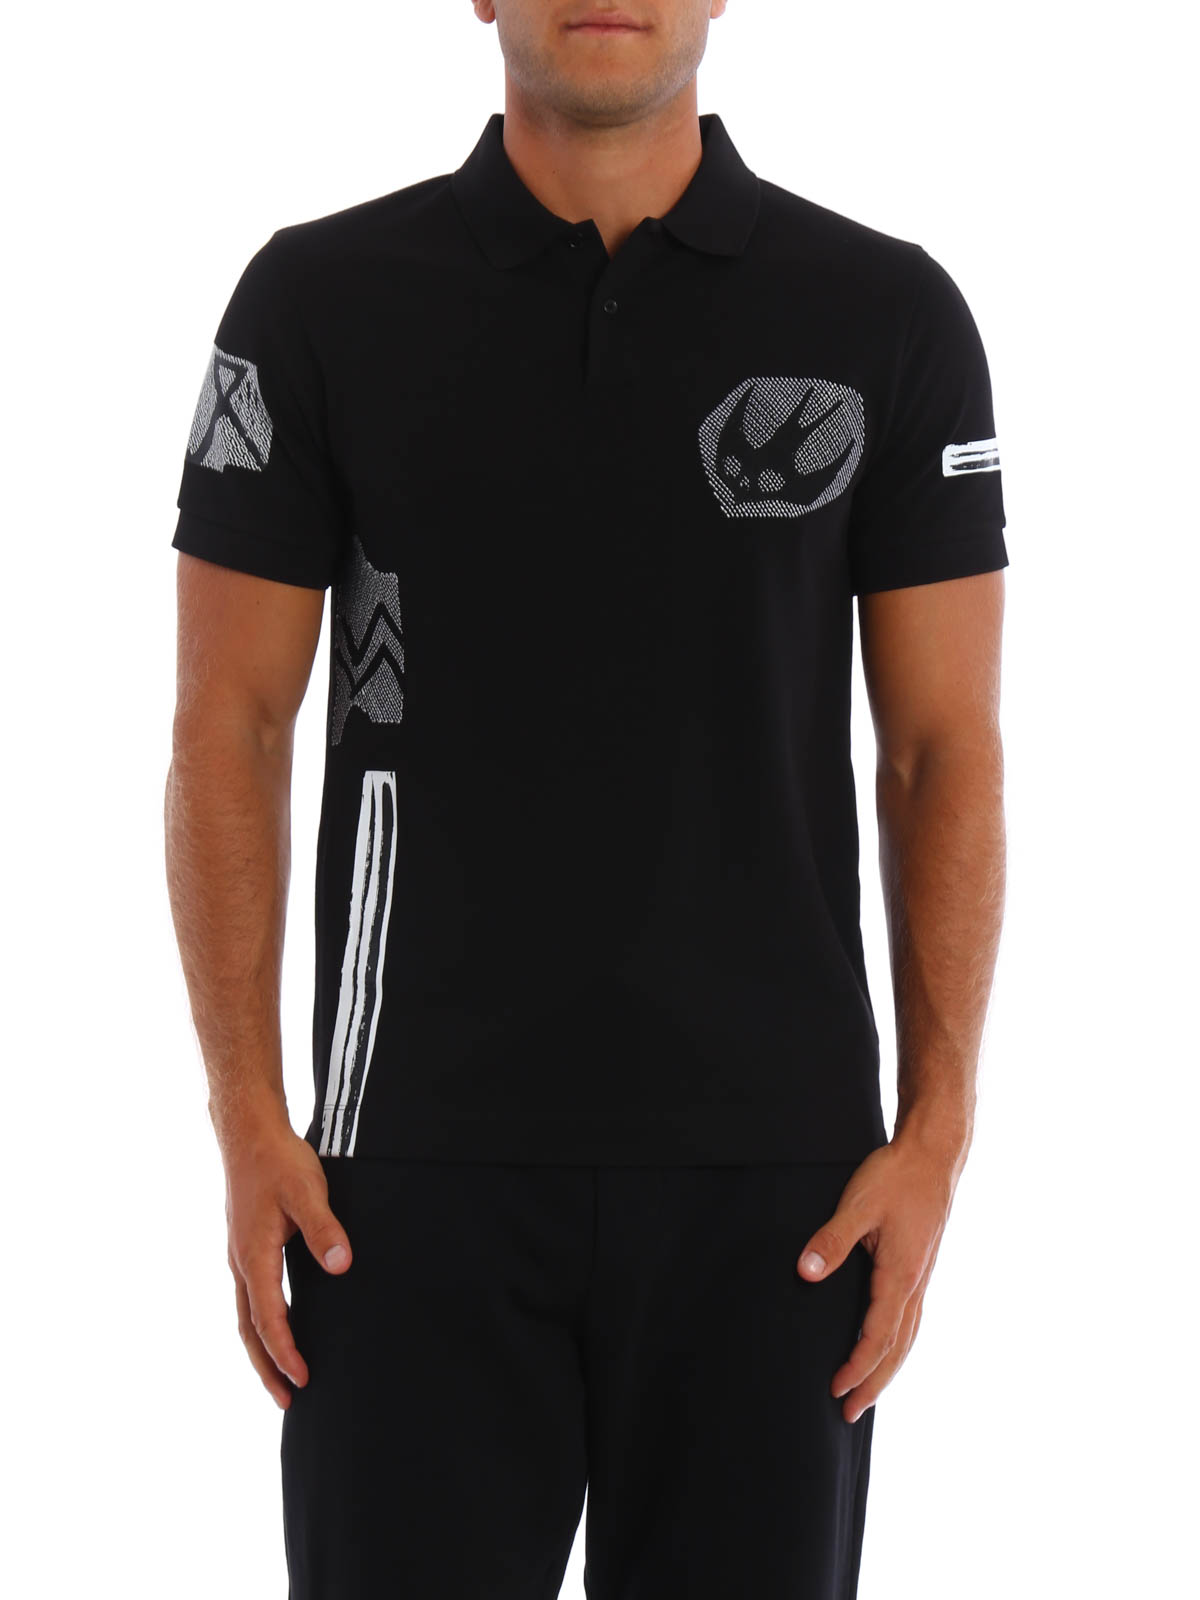 65fb2f42 Online Embroidered Polo Shirts - DREAMWORKS